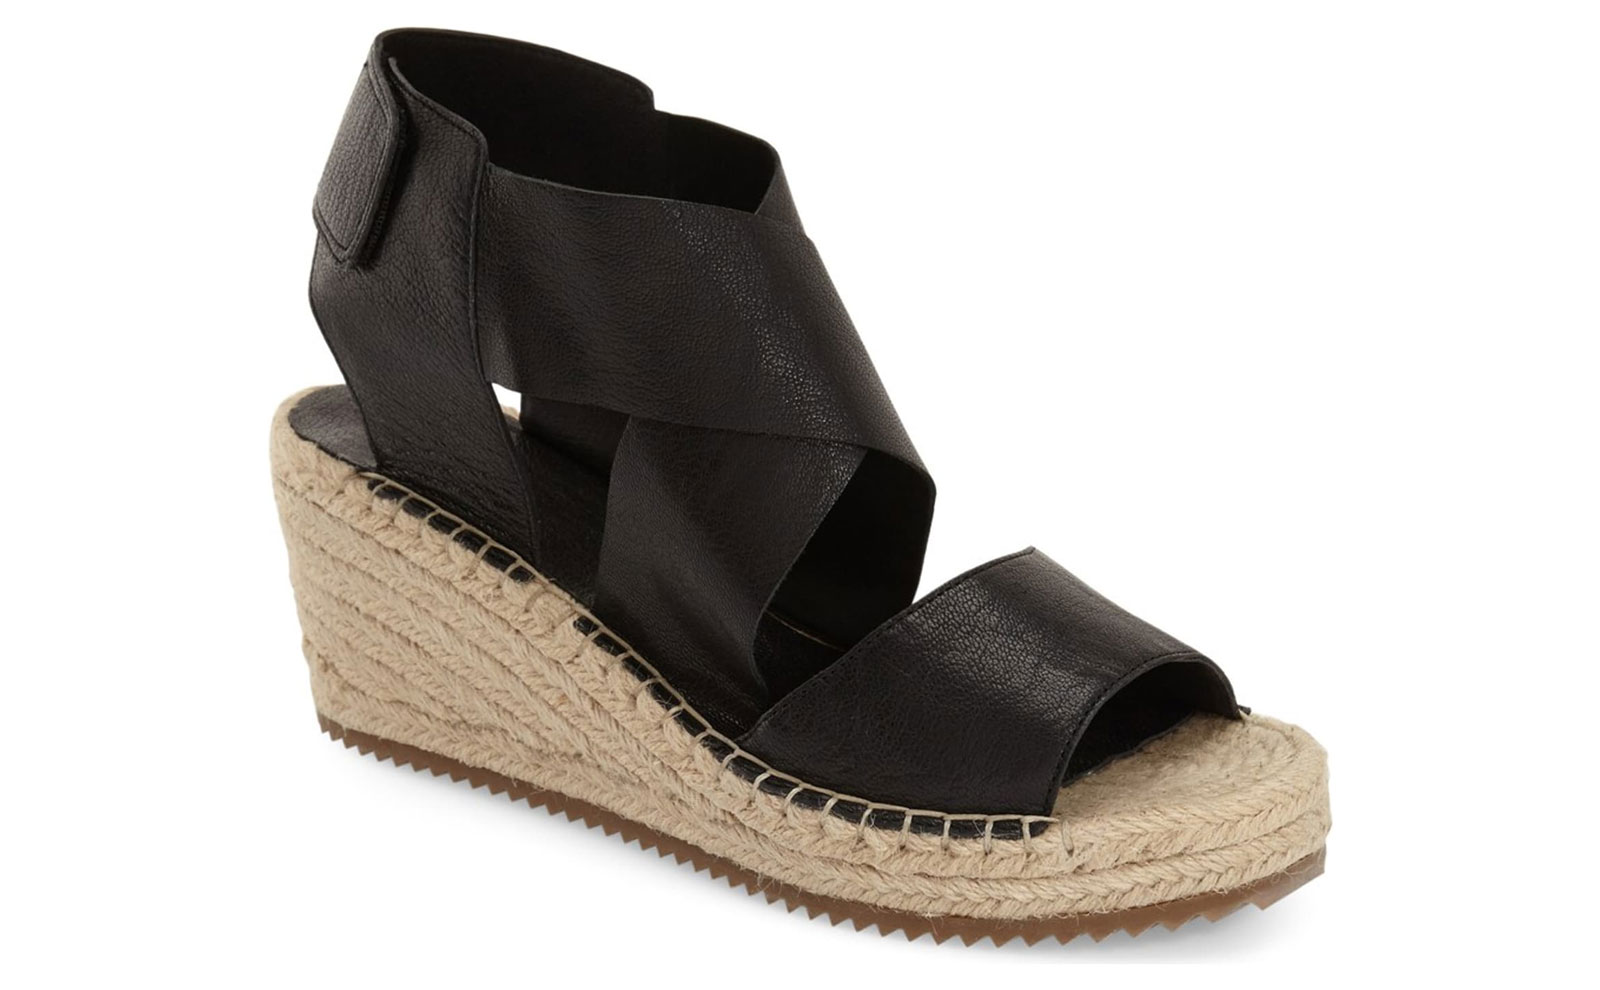 Black and Tan Espadrille Wedges